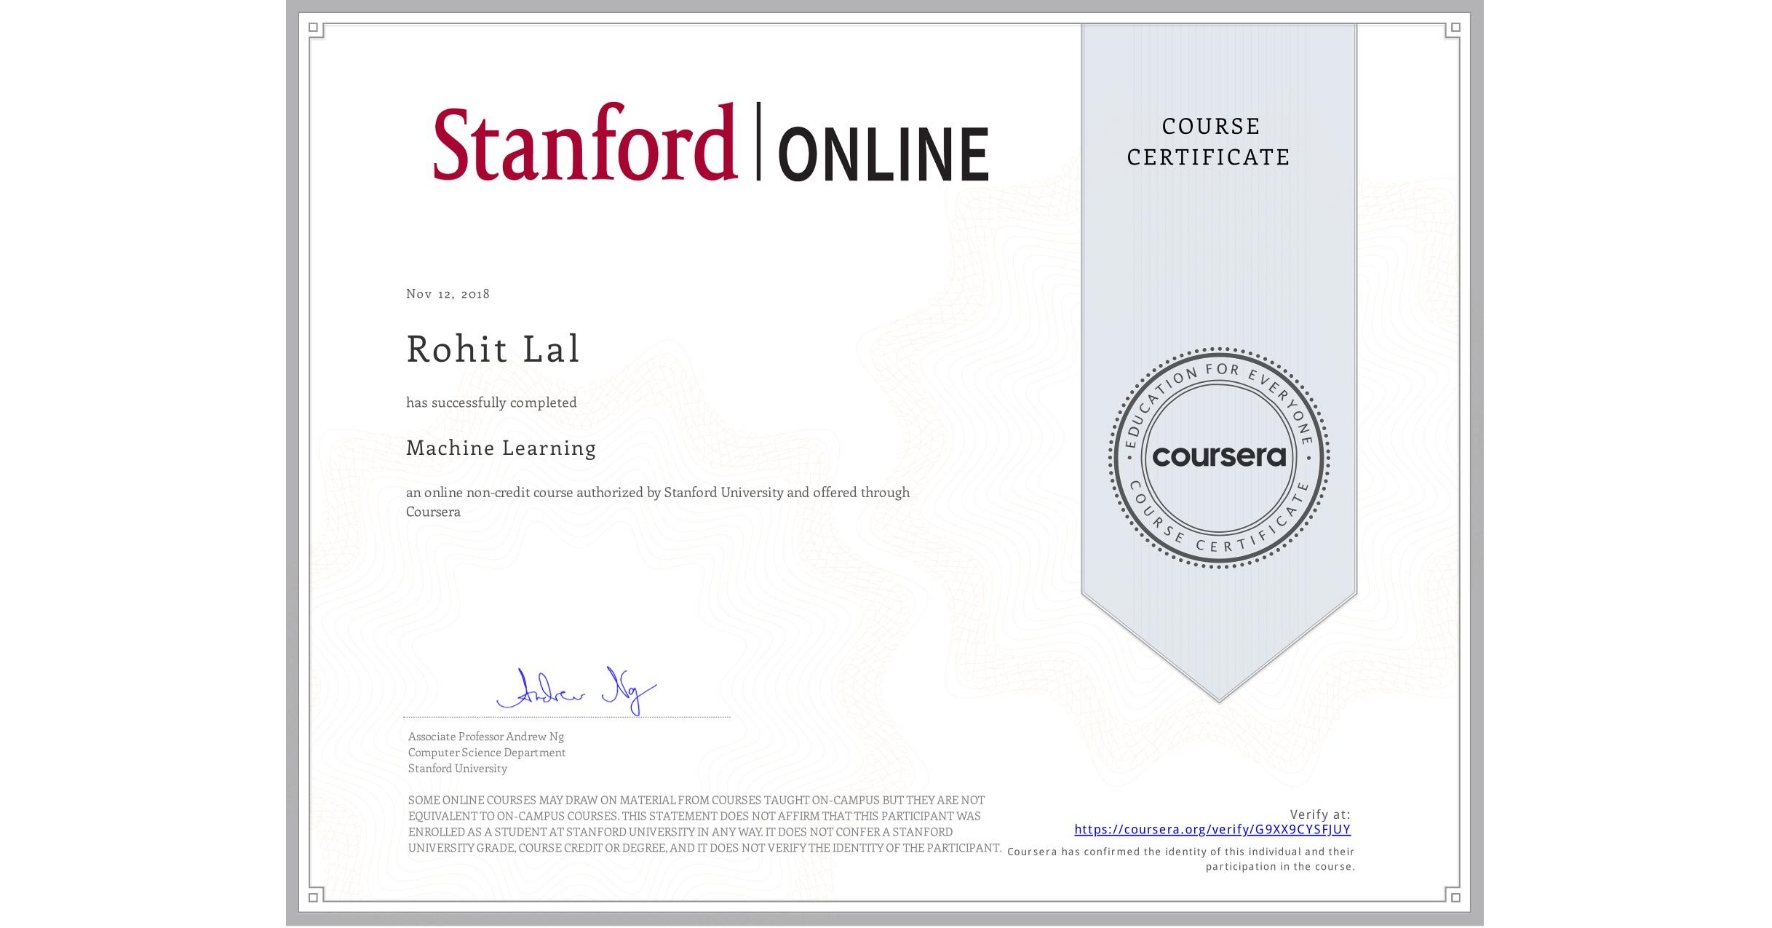 View certificate for Rohit Lal, Machine Learning, an online non-credit course authorized by Stanford University and offered through Coursera